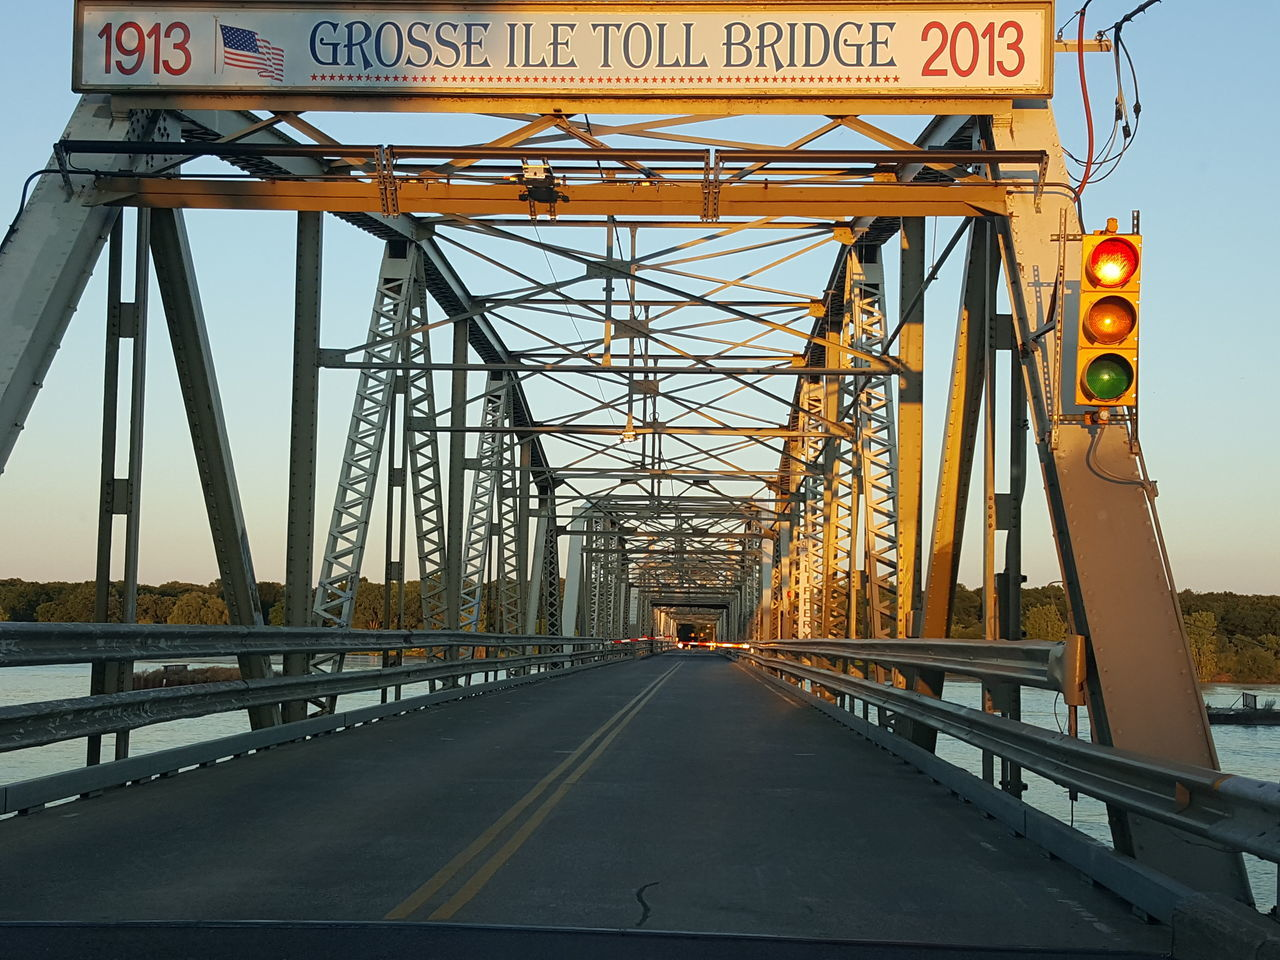 Grosse Isle Detroit River Bridges 1913 2013 Toll Bridges